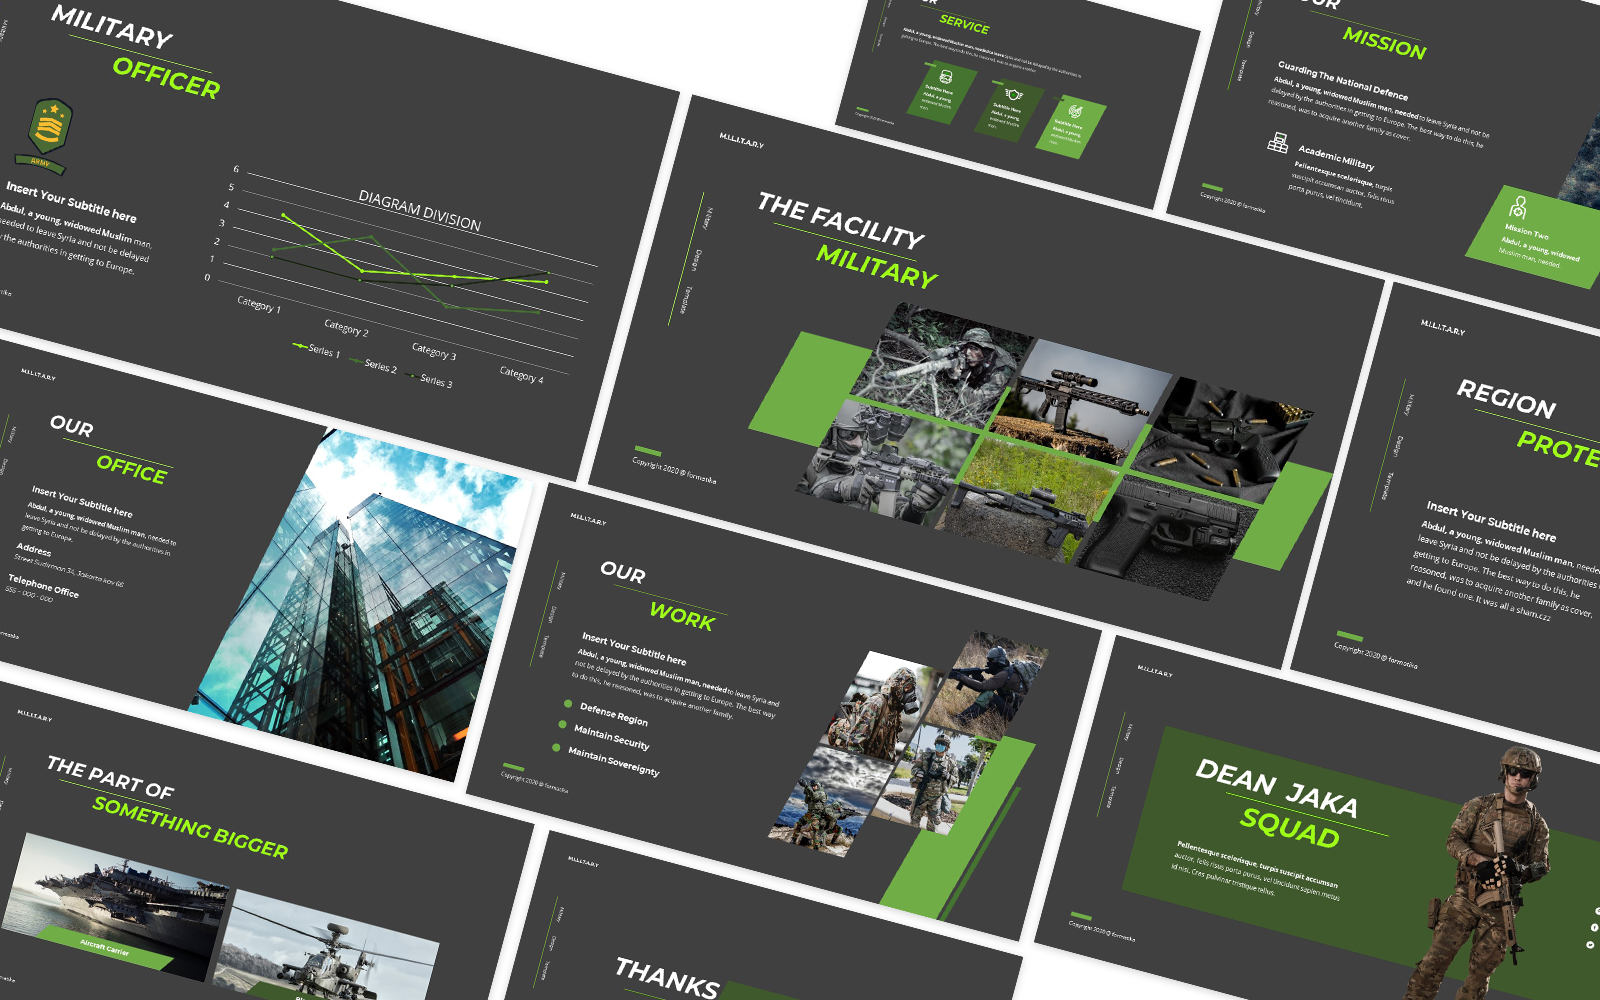 Dean Jaka Military Powerpoint Template